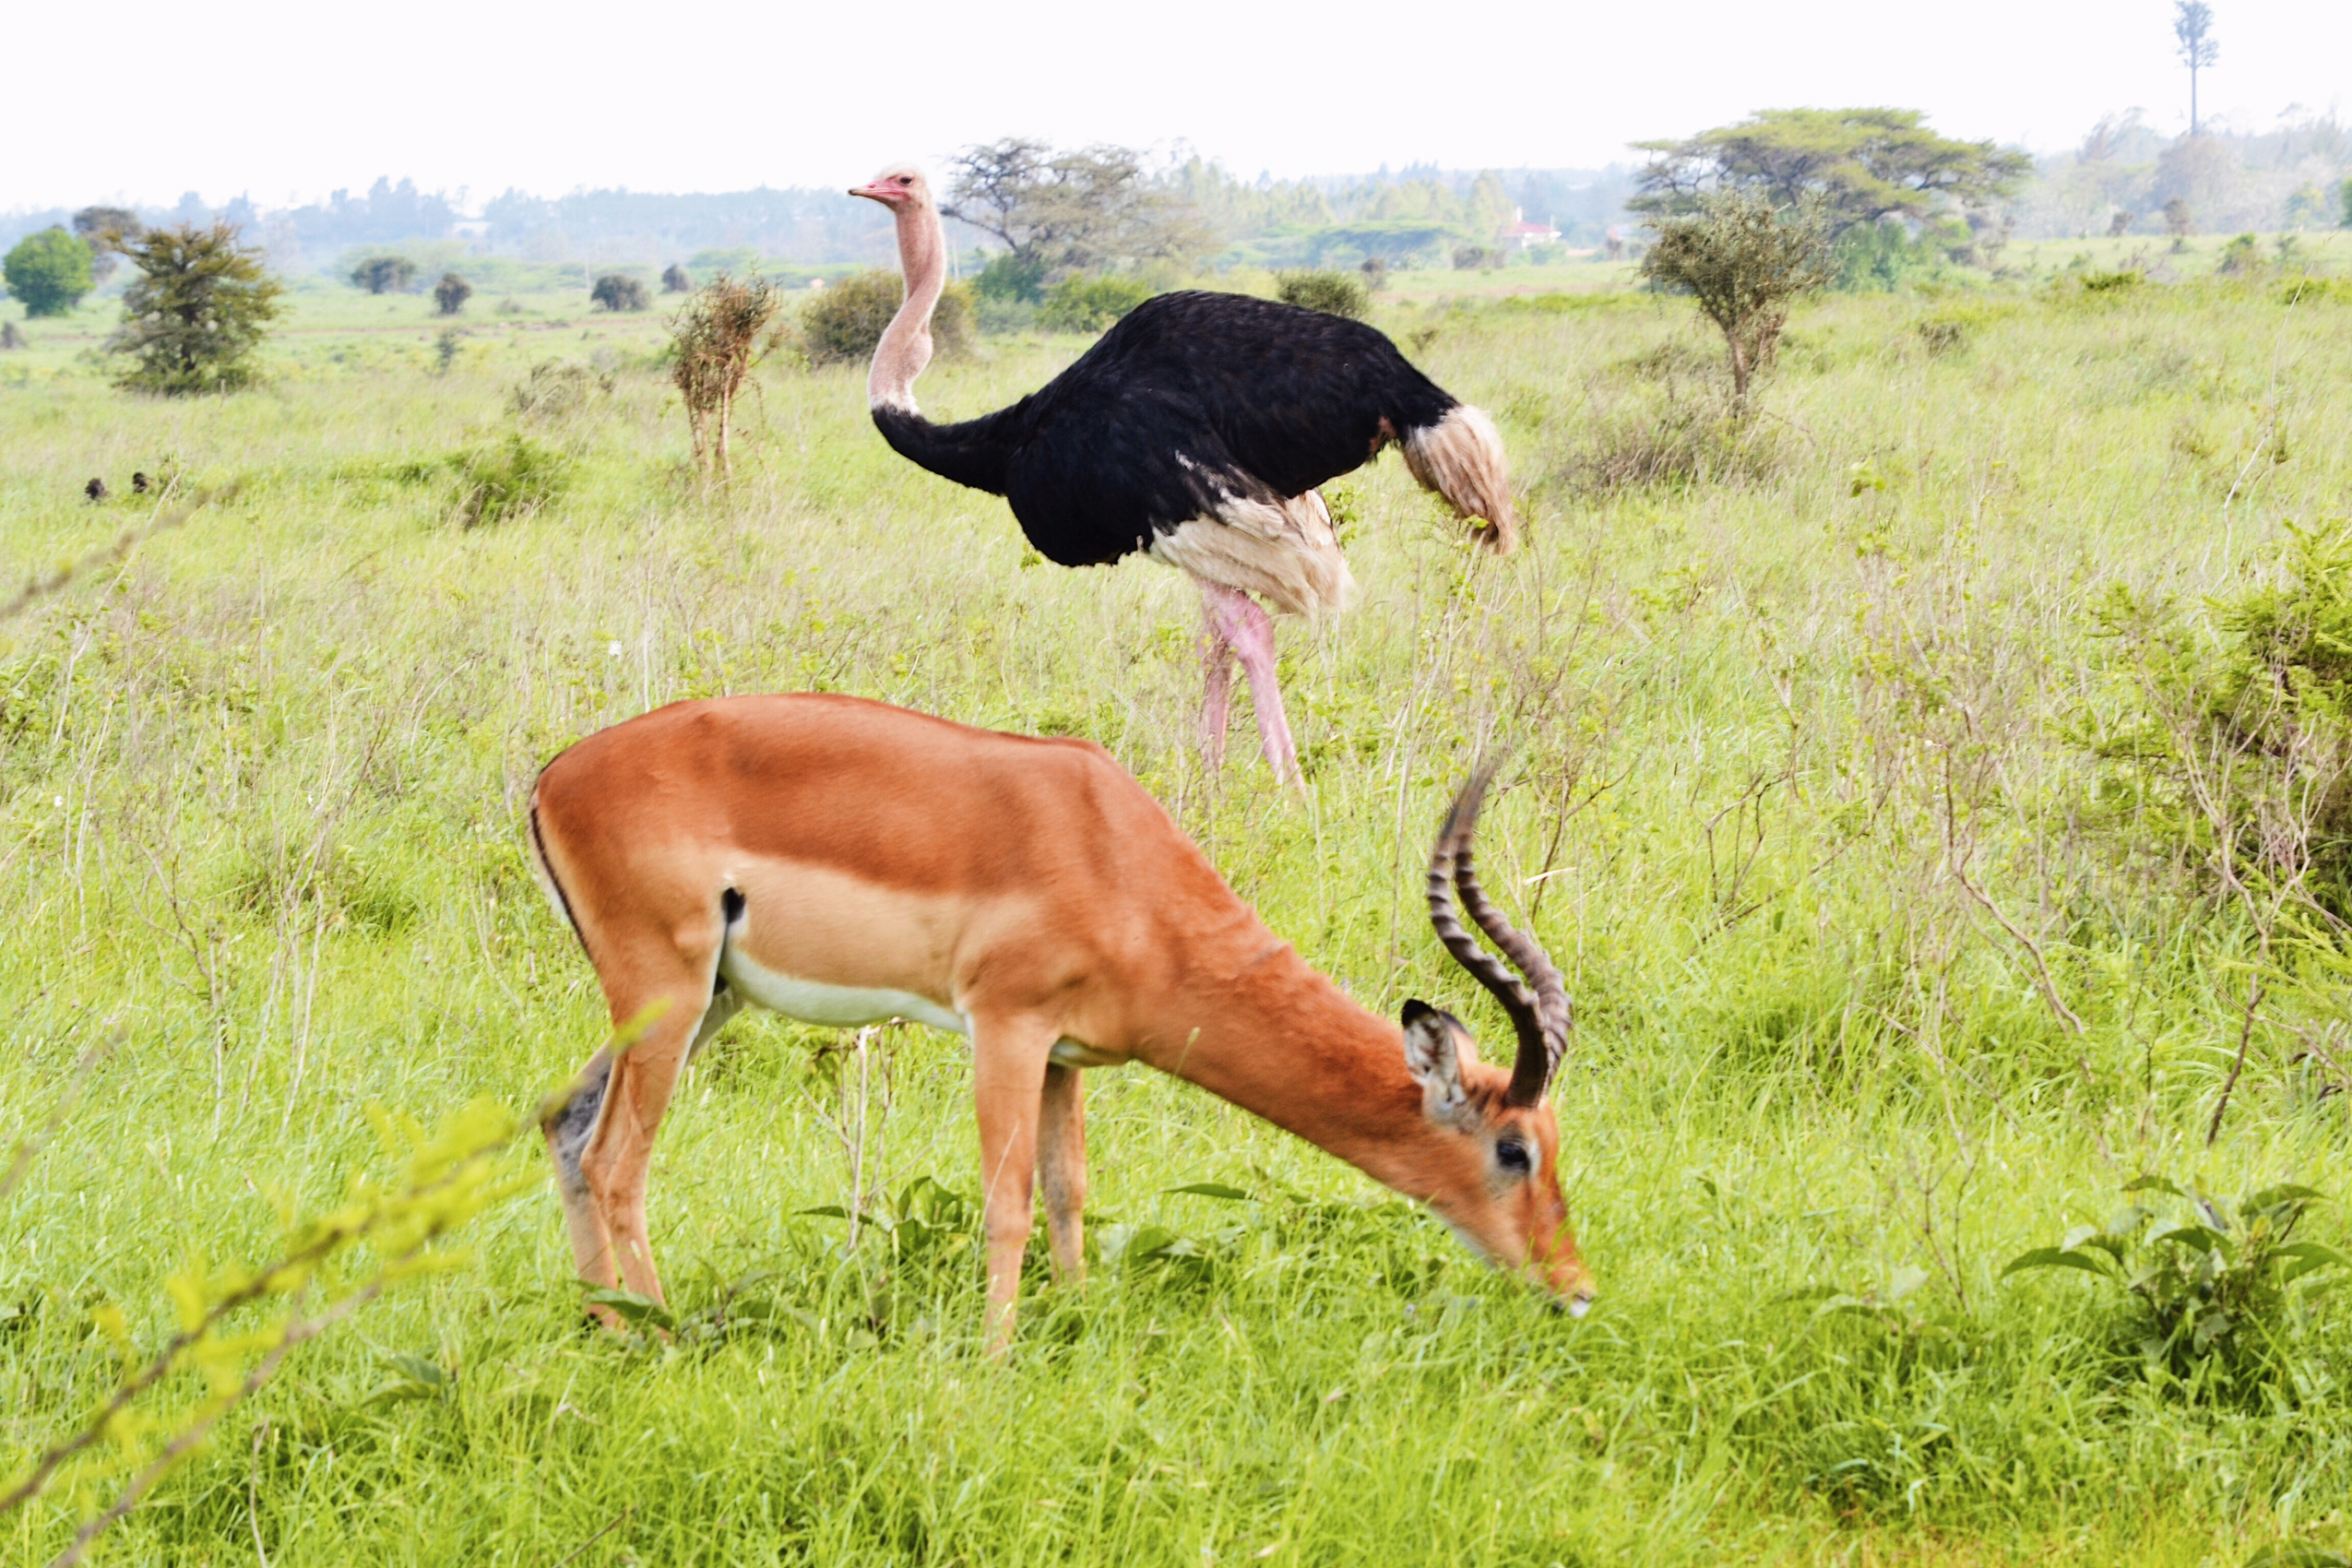 image of impala and ostrich in Nairobi National Park